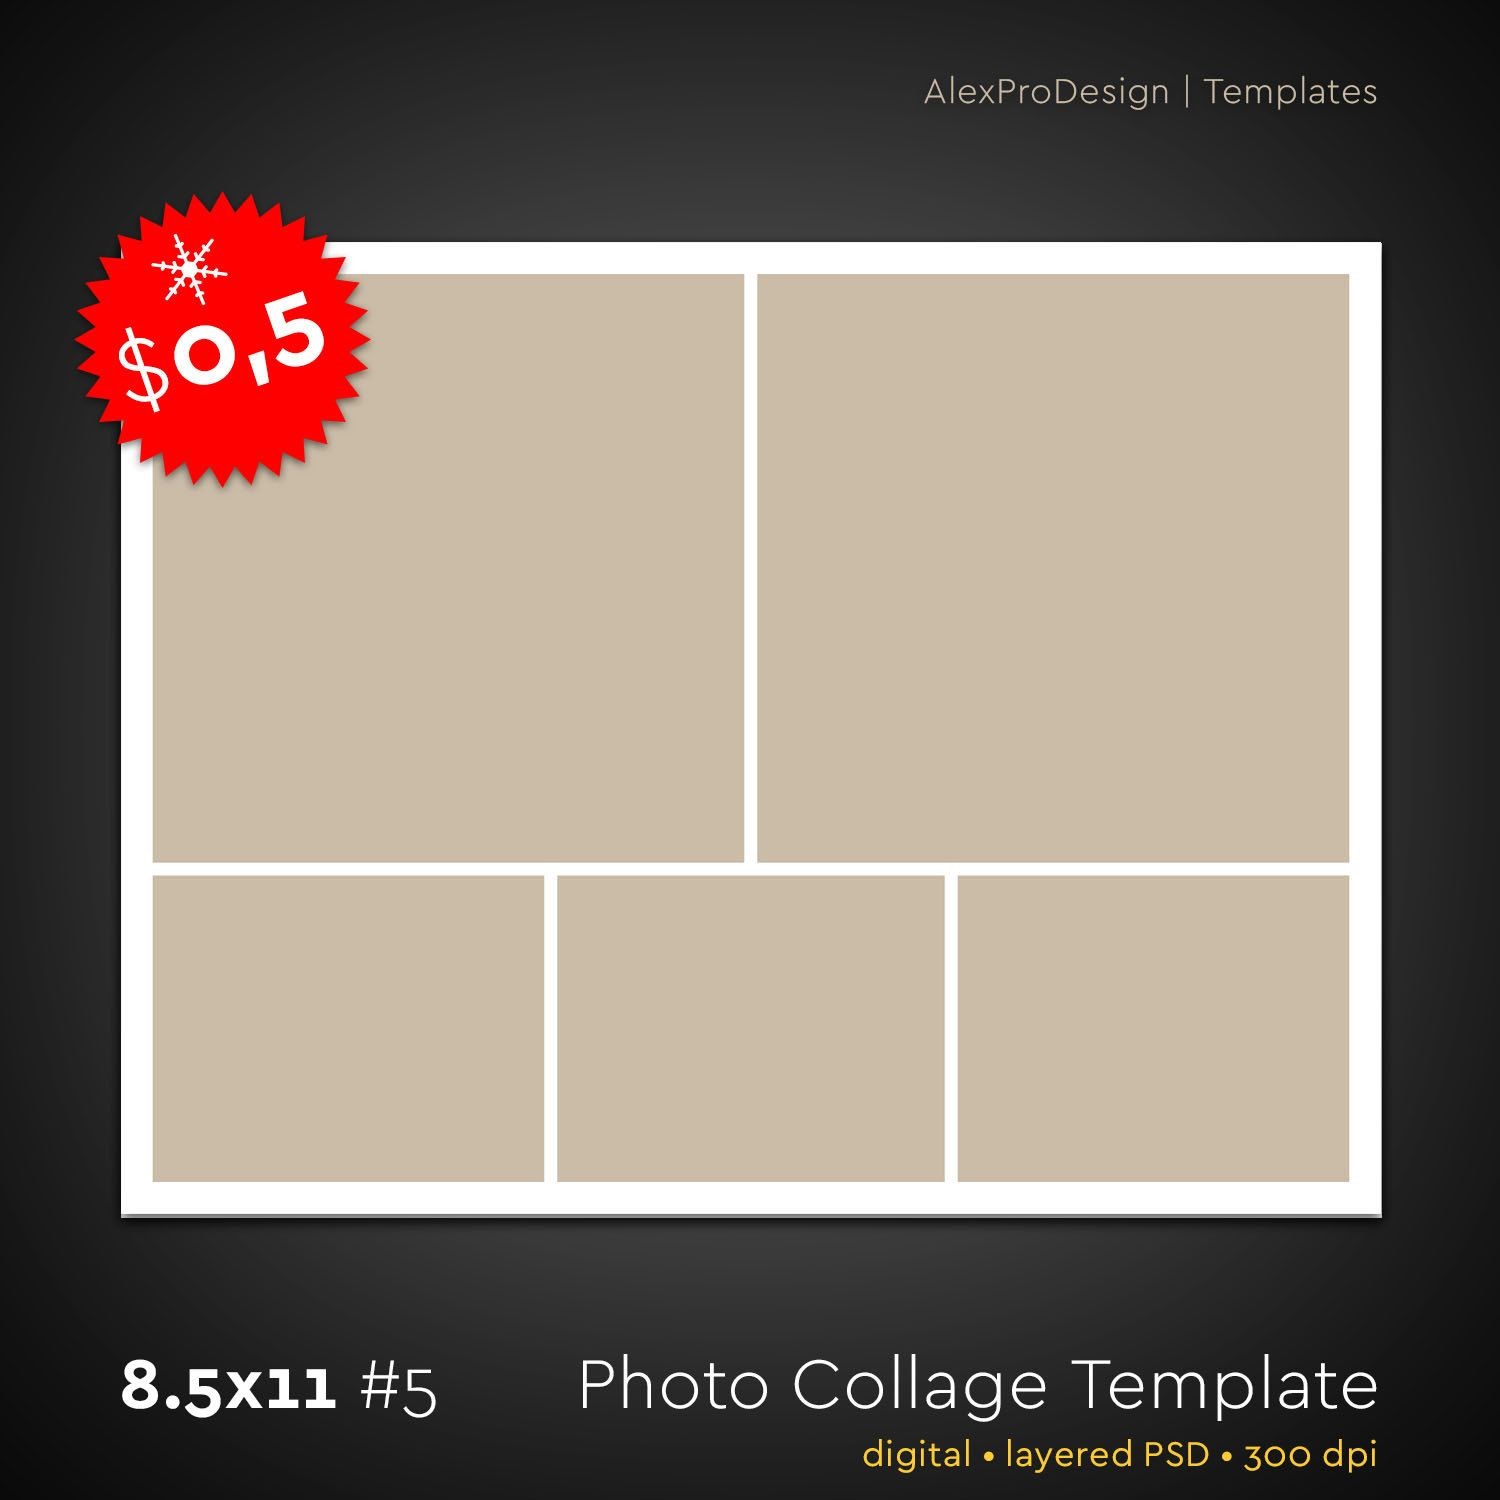 Photo Collage Template 8,5 x 11 #5, 5 photo, Storyboard Template ...